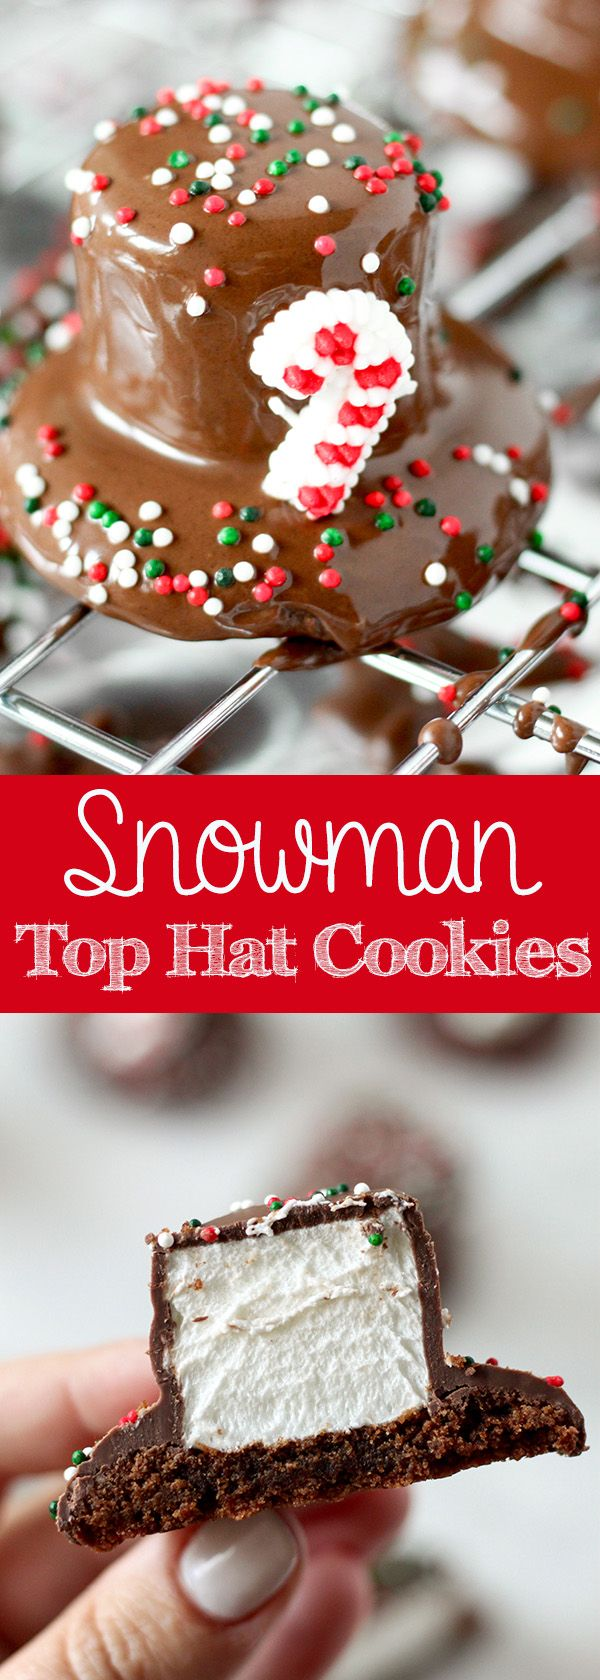 Amp occasions gt christmas alert occasions gt christmas decorations - Snowman Top Hat Christmas Cookies